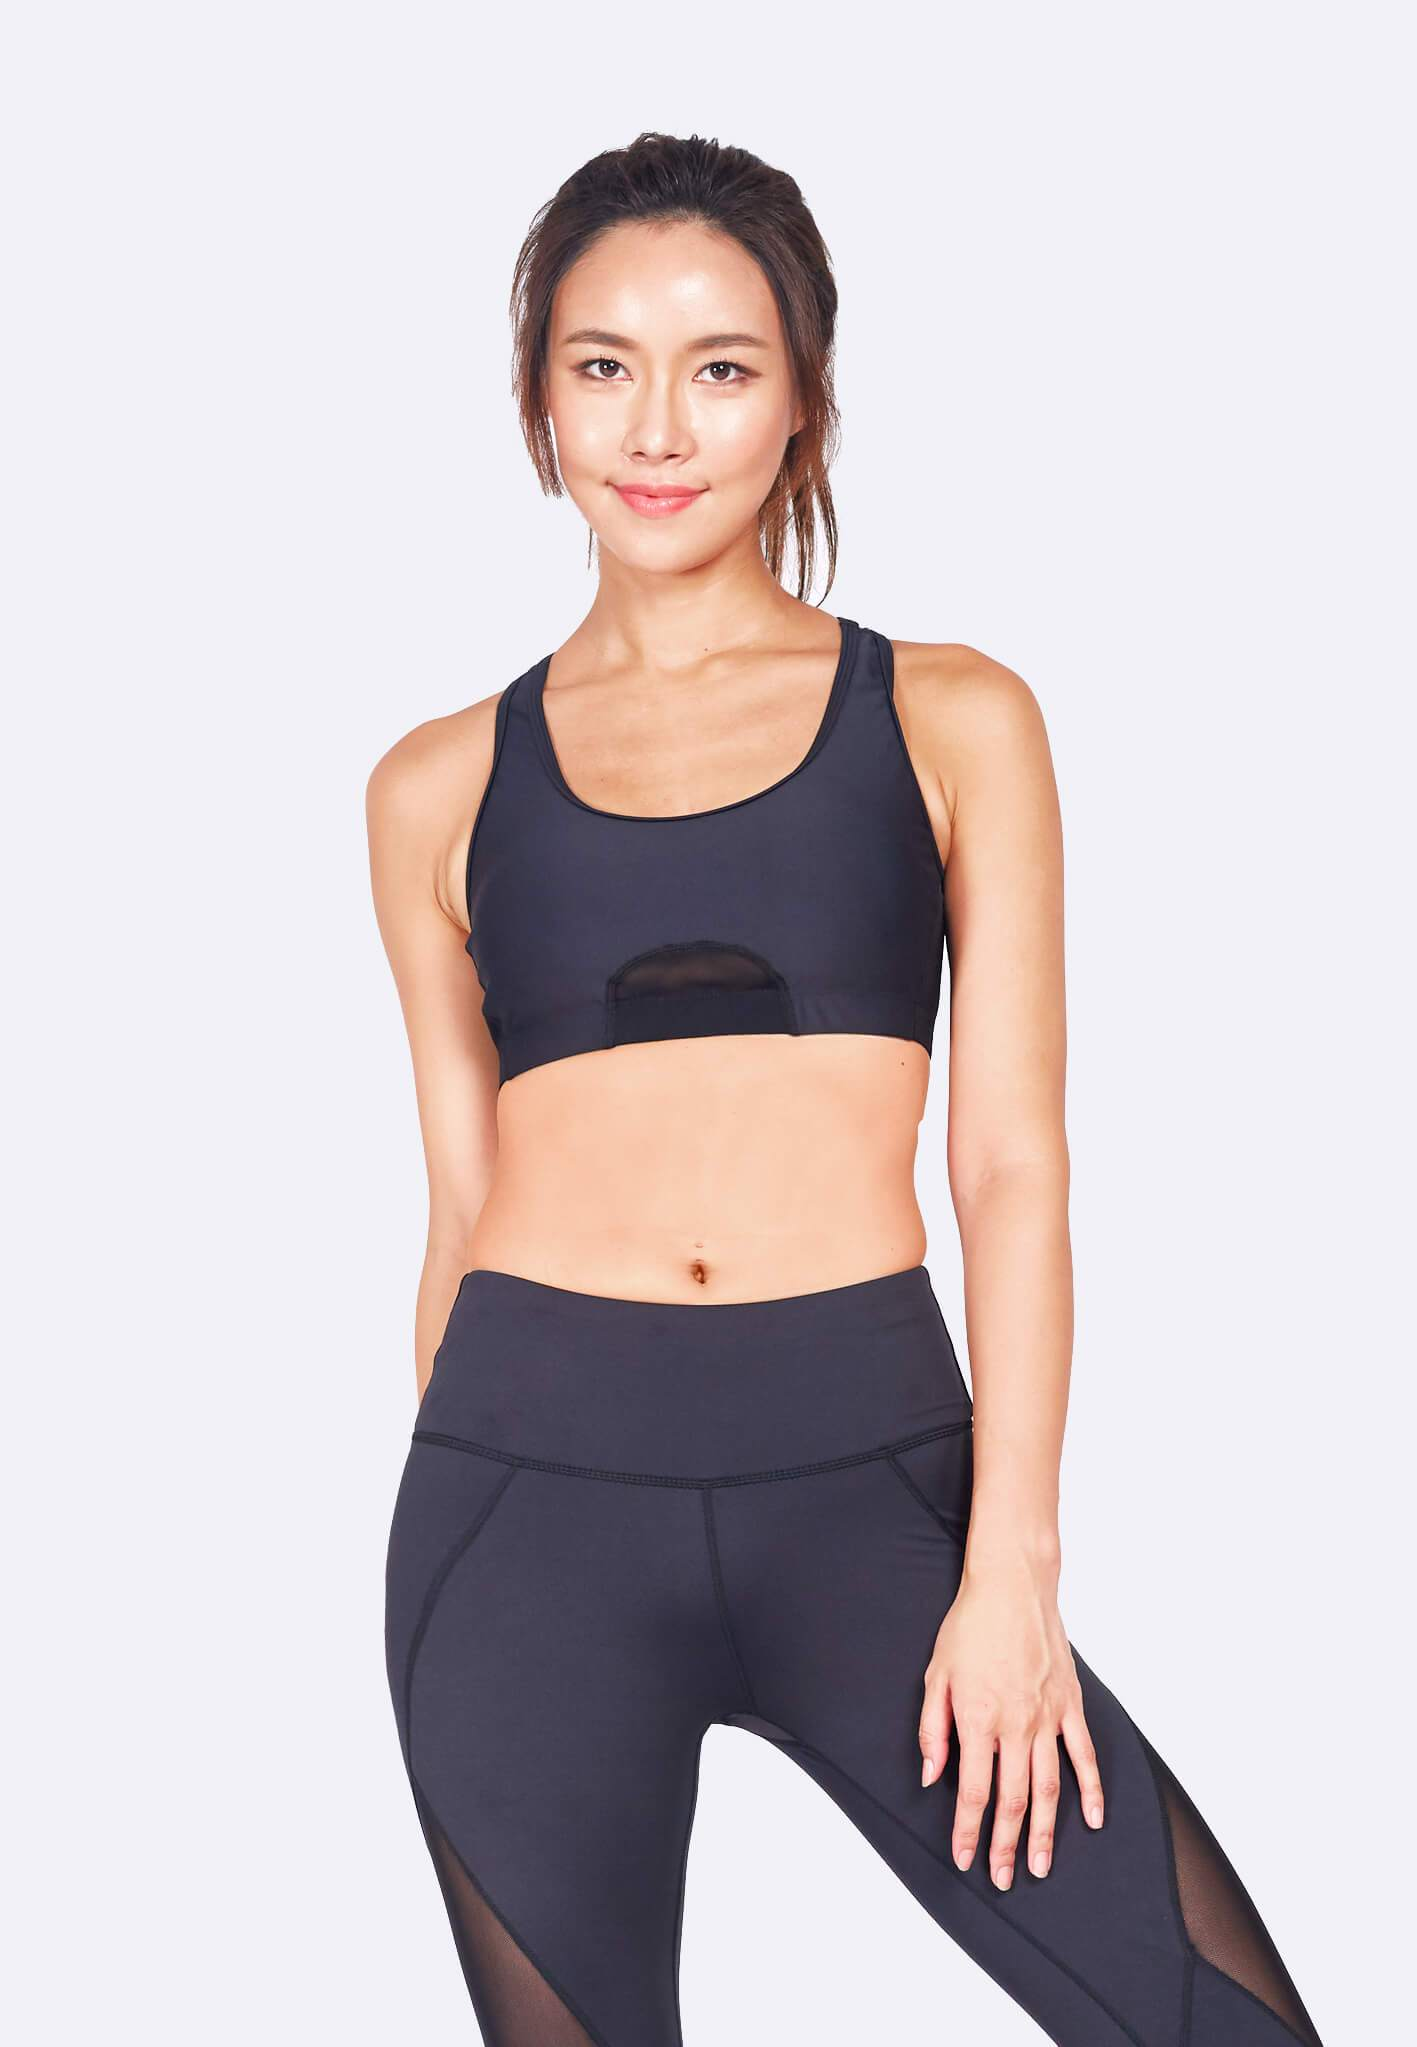 Knockout Racerback Sports Bra in Black